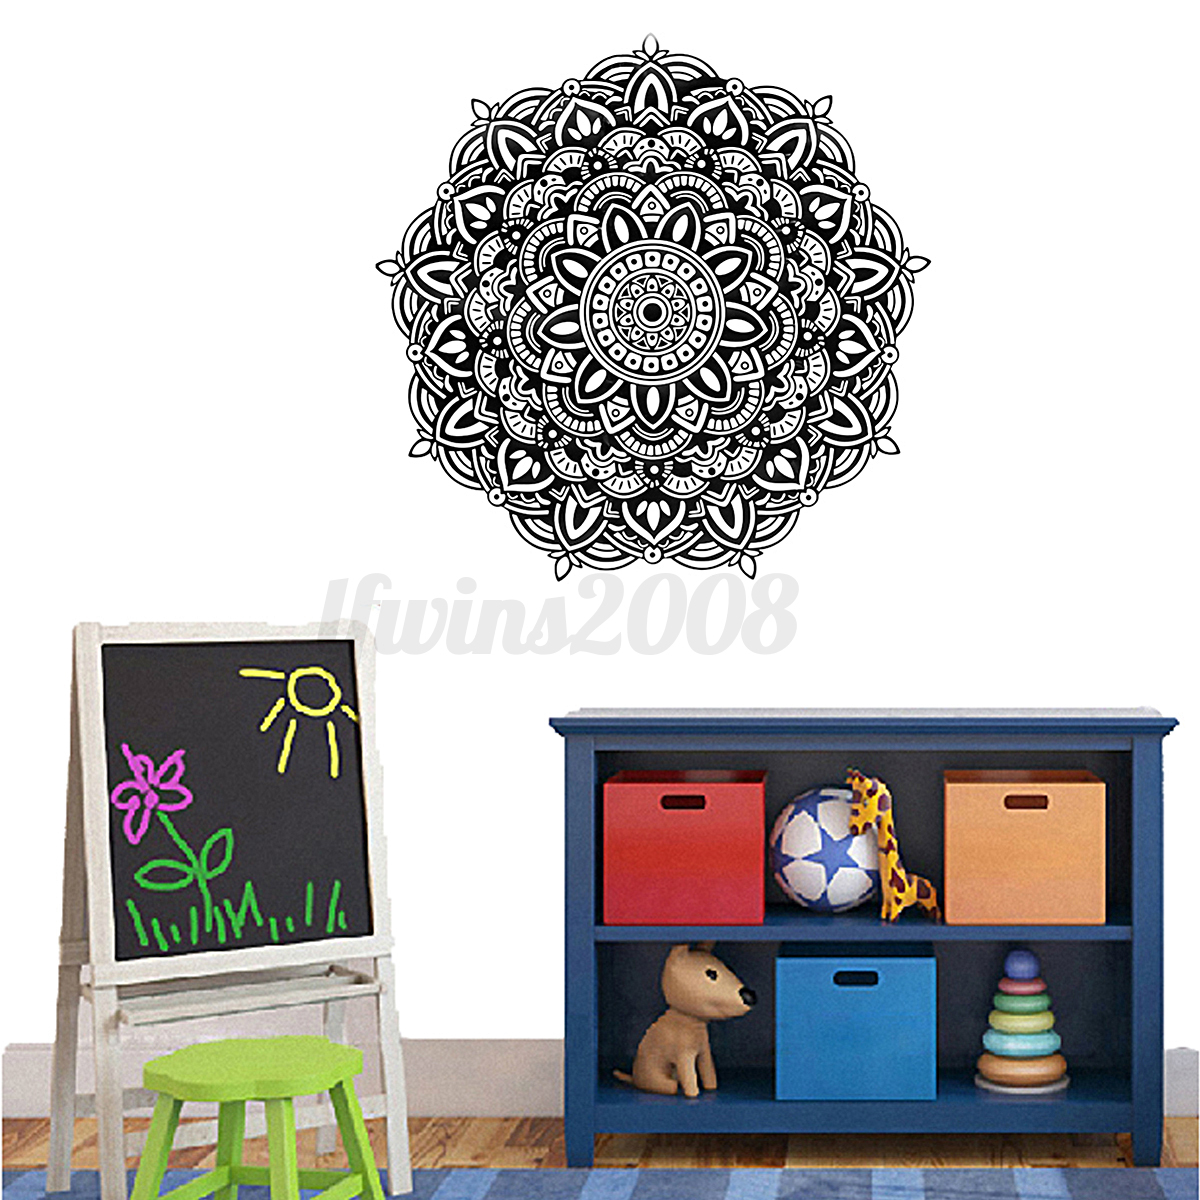 indische blumen mandala wandaufkleber wandtattoo wandsticker wohnzimmer deko ebay. Black Bedroom Furniture Sets. Home Design Ideas